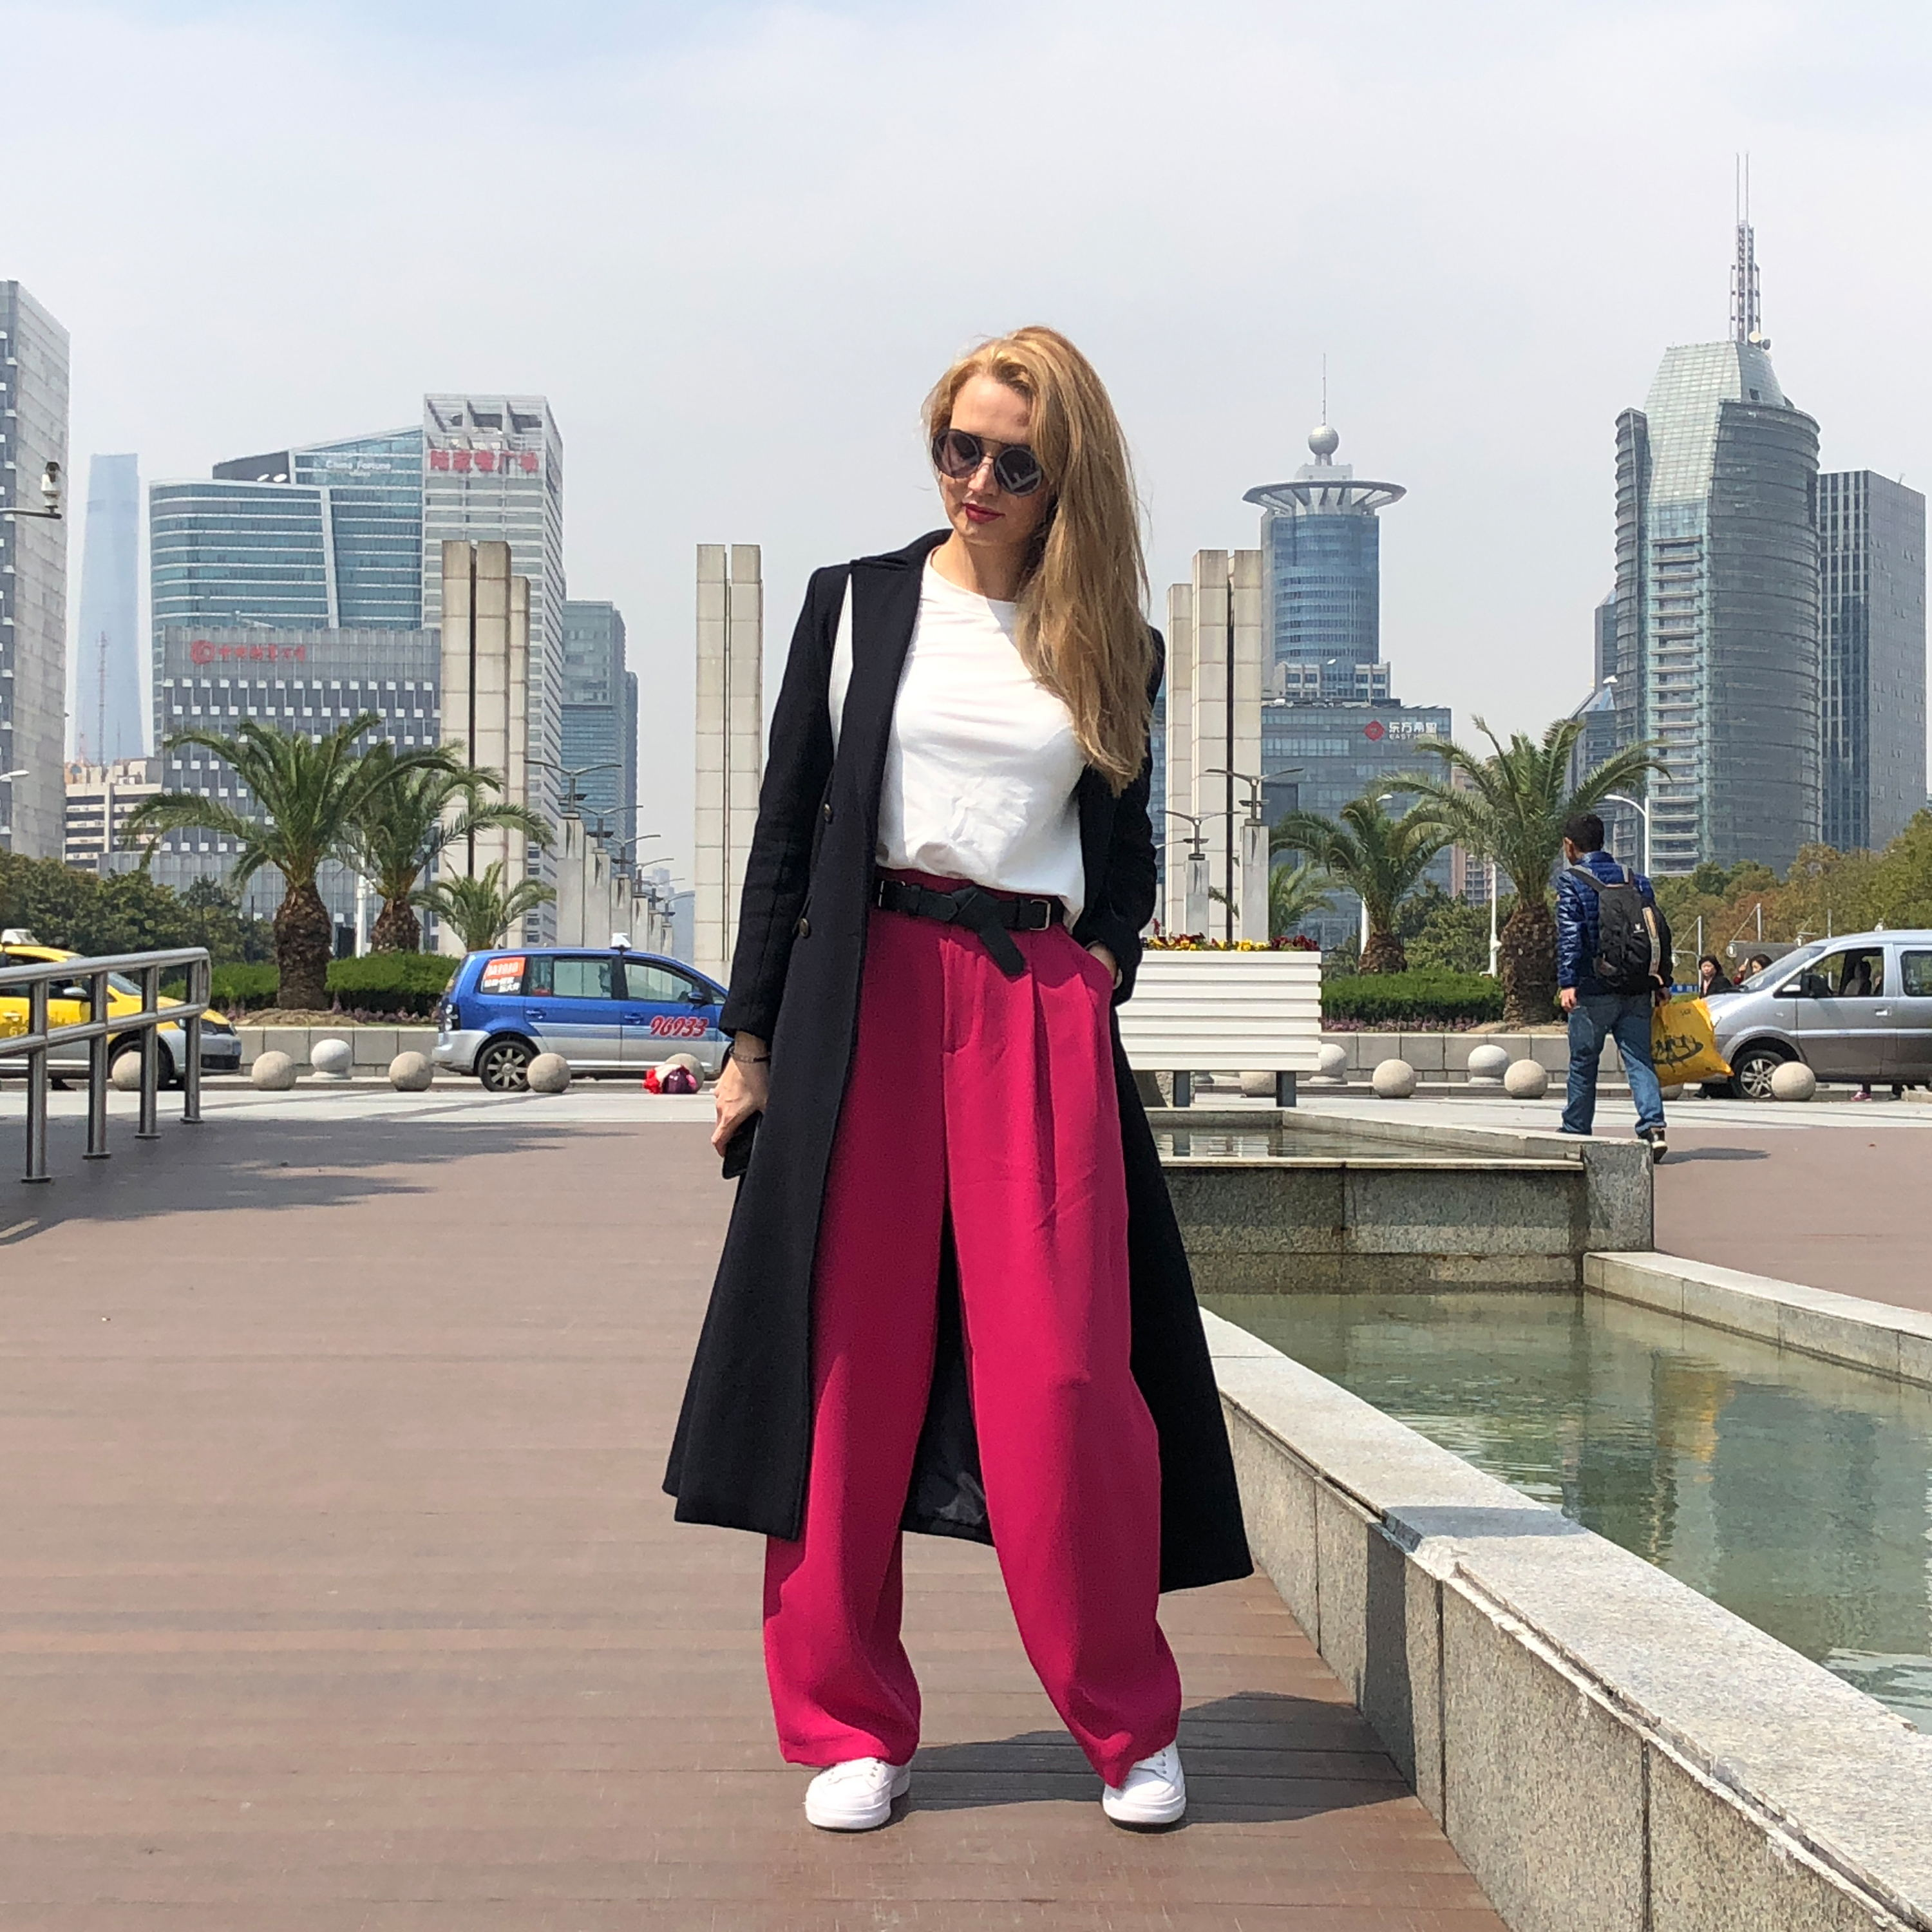 Image 3 - FATIKA 2019 Winter Hot Women Thick Pants Loose Solid Wide Leg Pants Trendy Ladies Loose Trousers Women's Clothing-in Pants & Capris from Women's Clothing